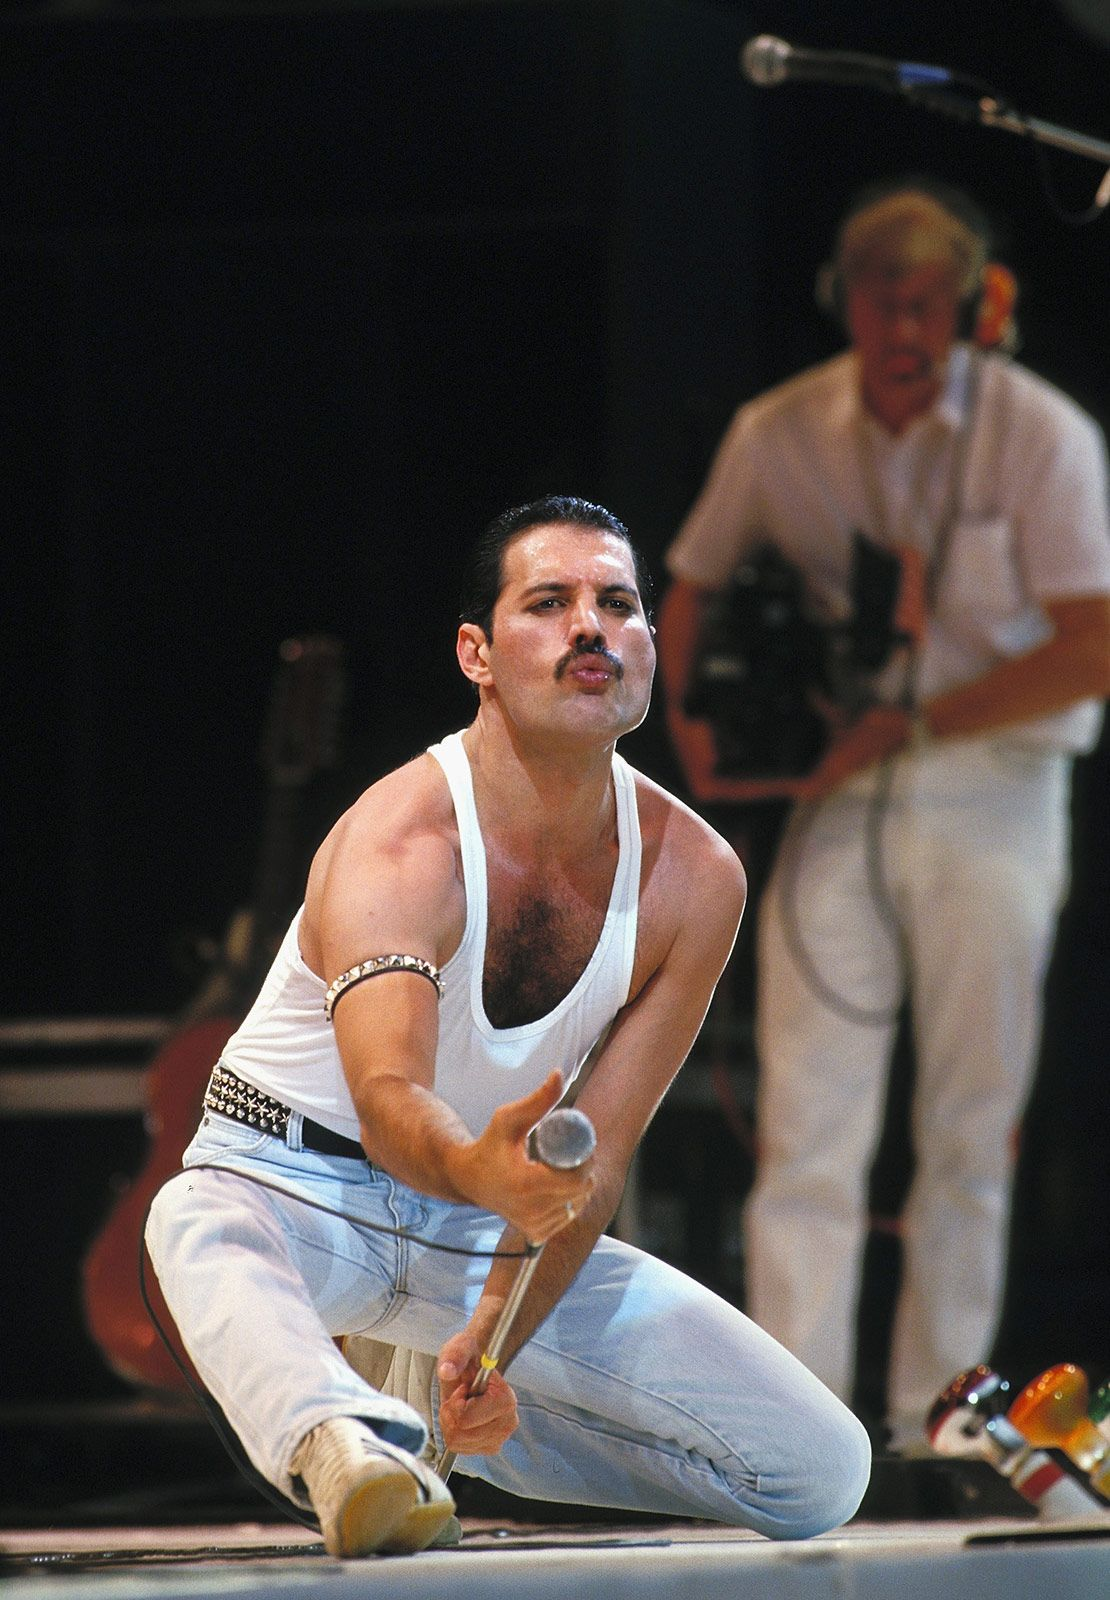 33 years later, Queen's Live Aid performance is still pure magic #freddiemercury